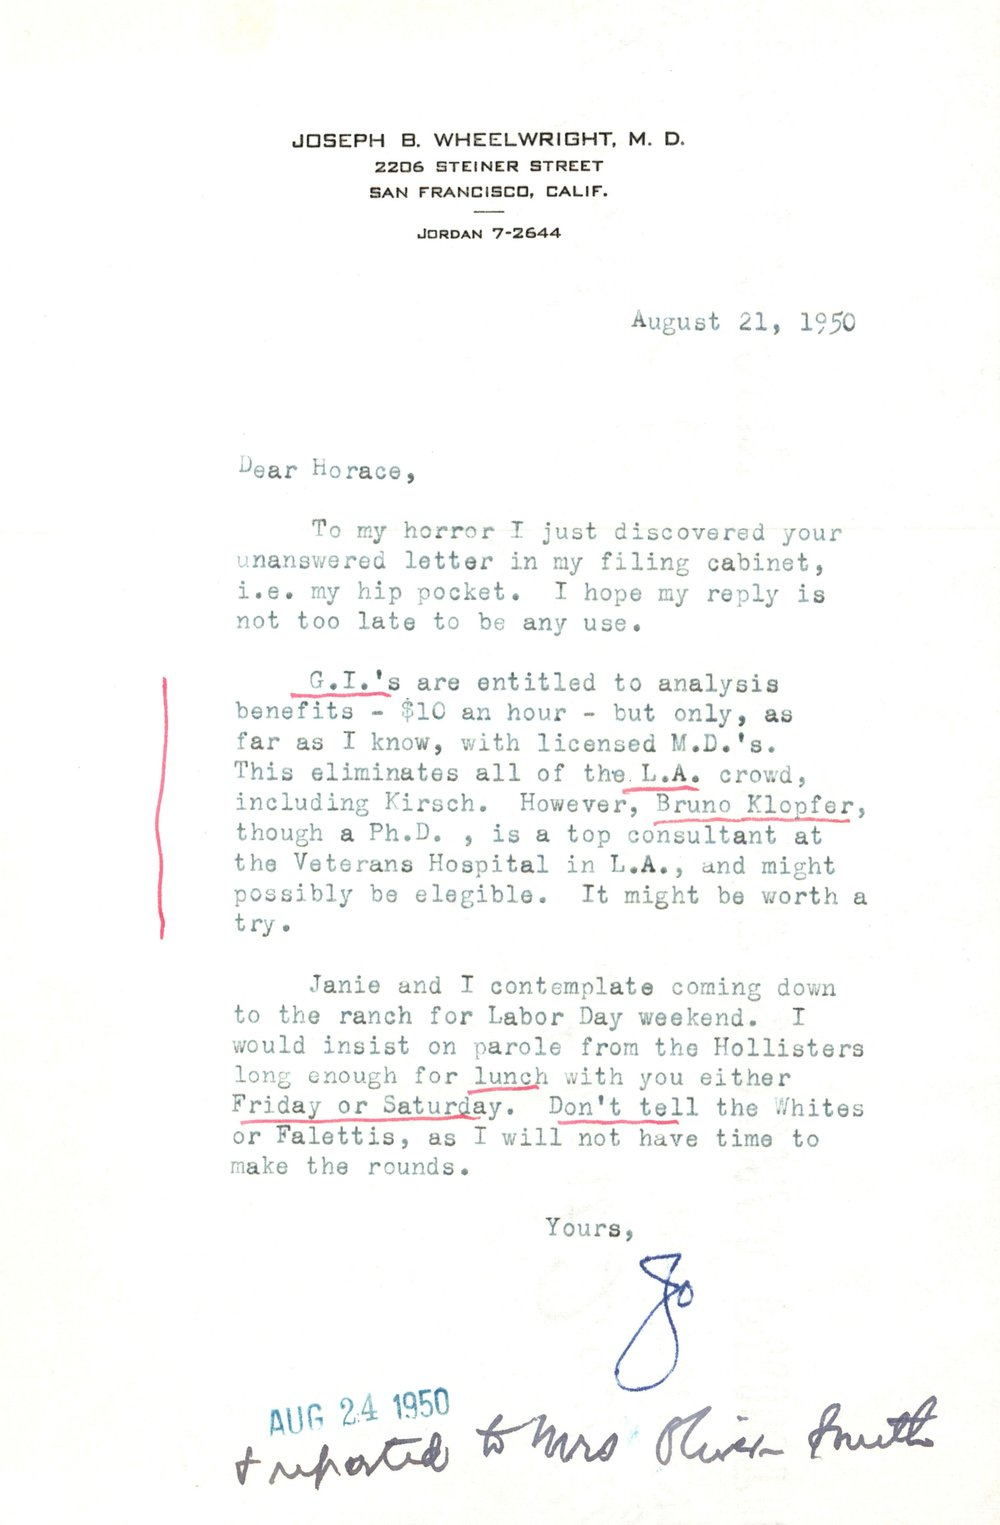 Letter from Jo Wheelwright to Horace Gray (August 21, 1950)